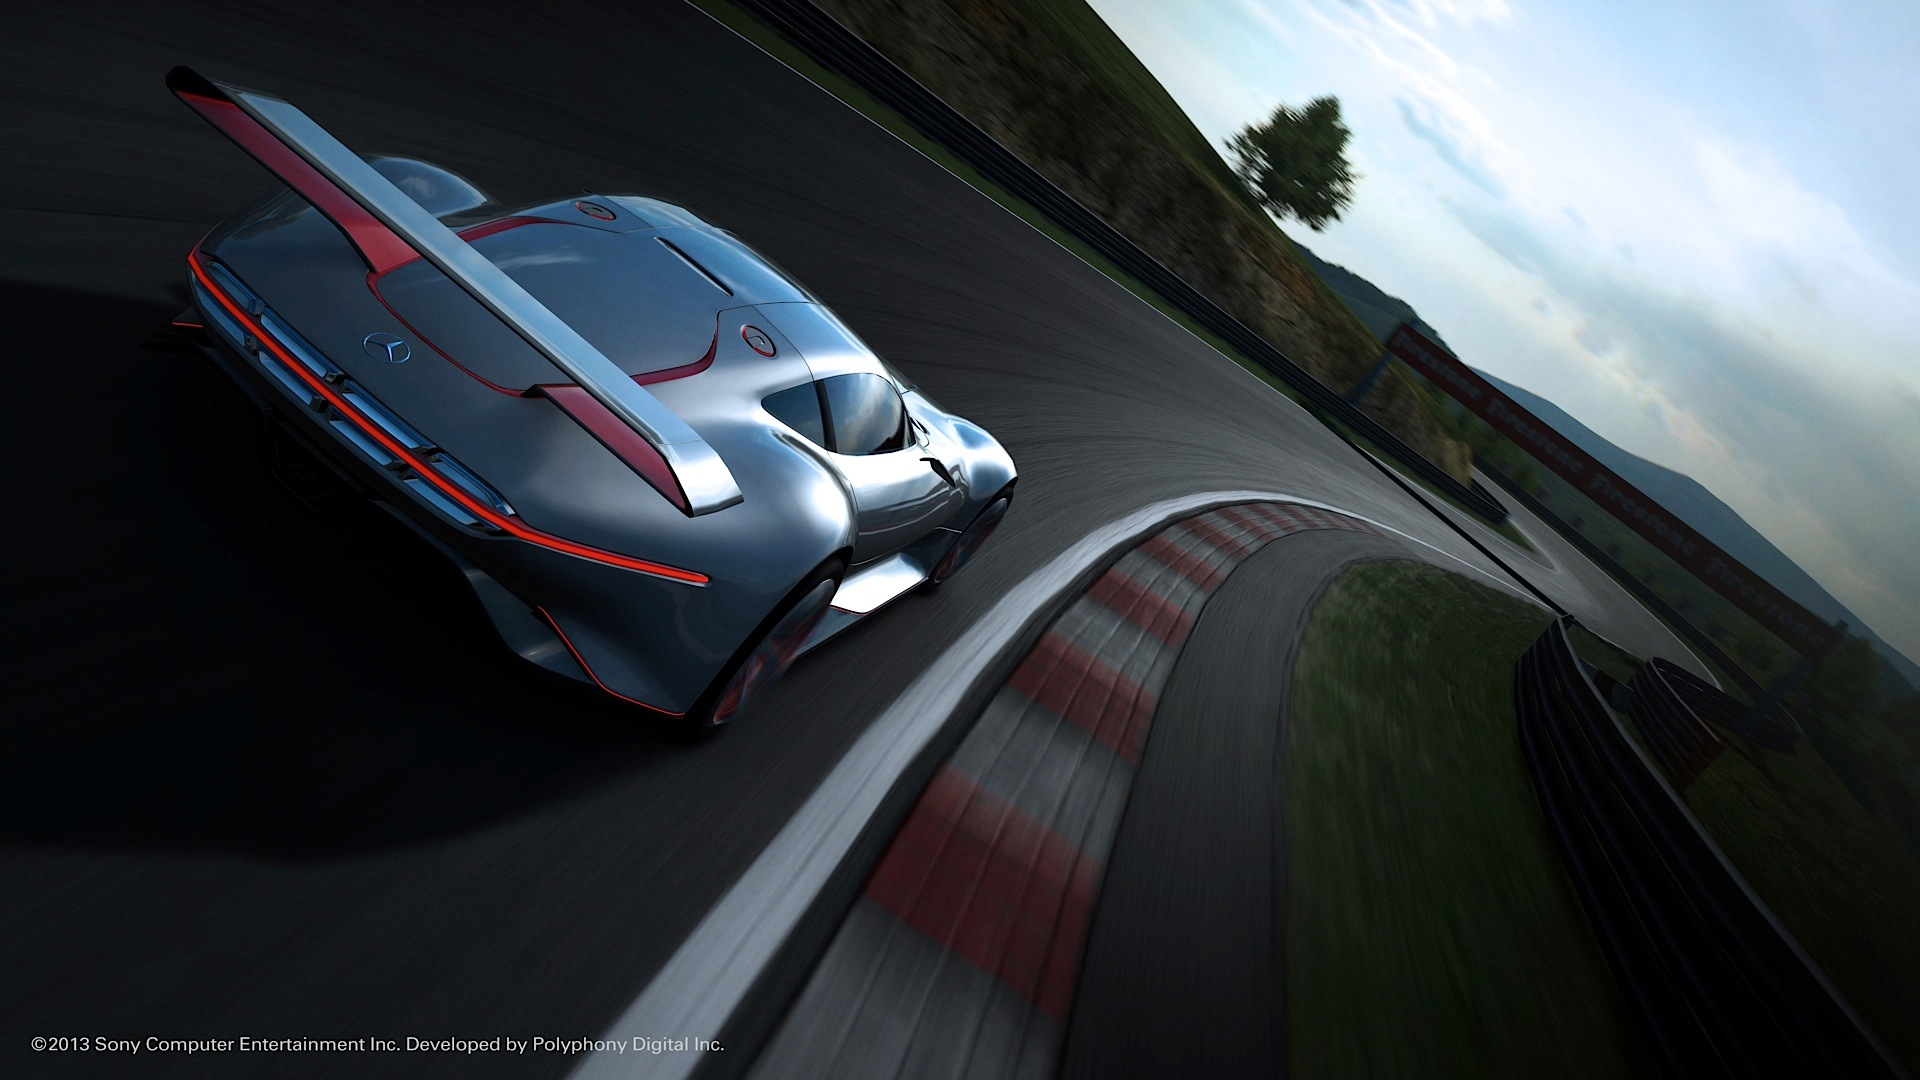 Mercedes-Benz Design Manager Gives Interview About AMG Vision Gran Turismo - autoevolution